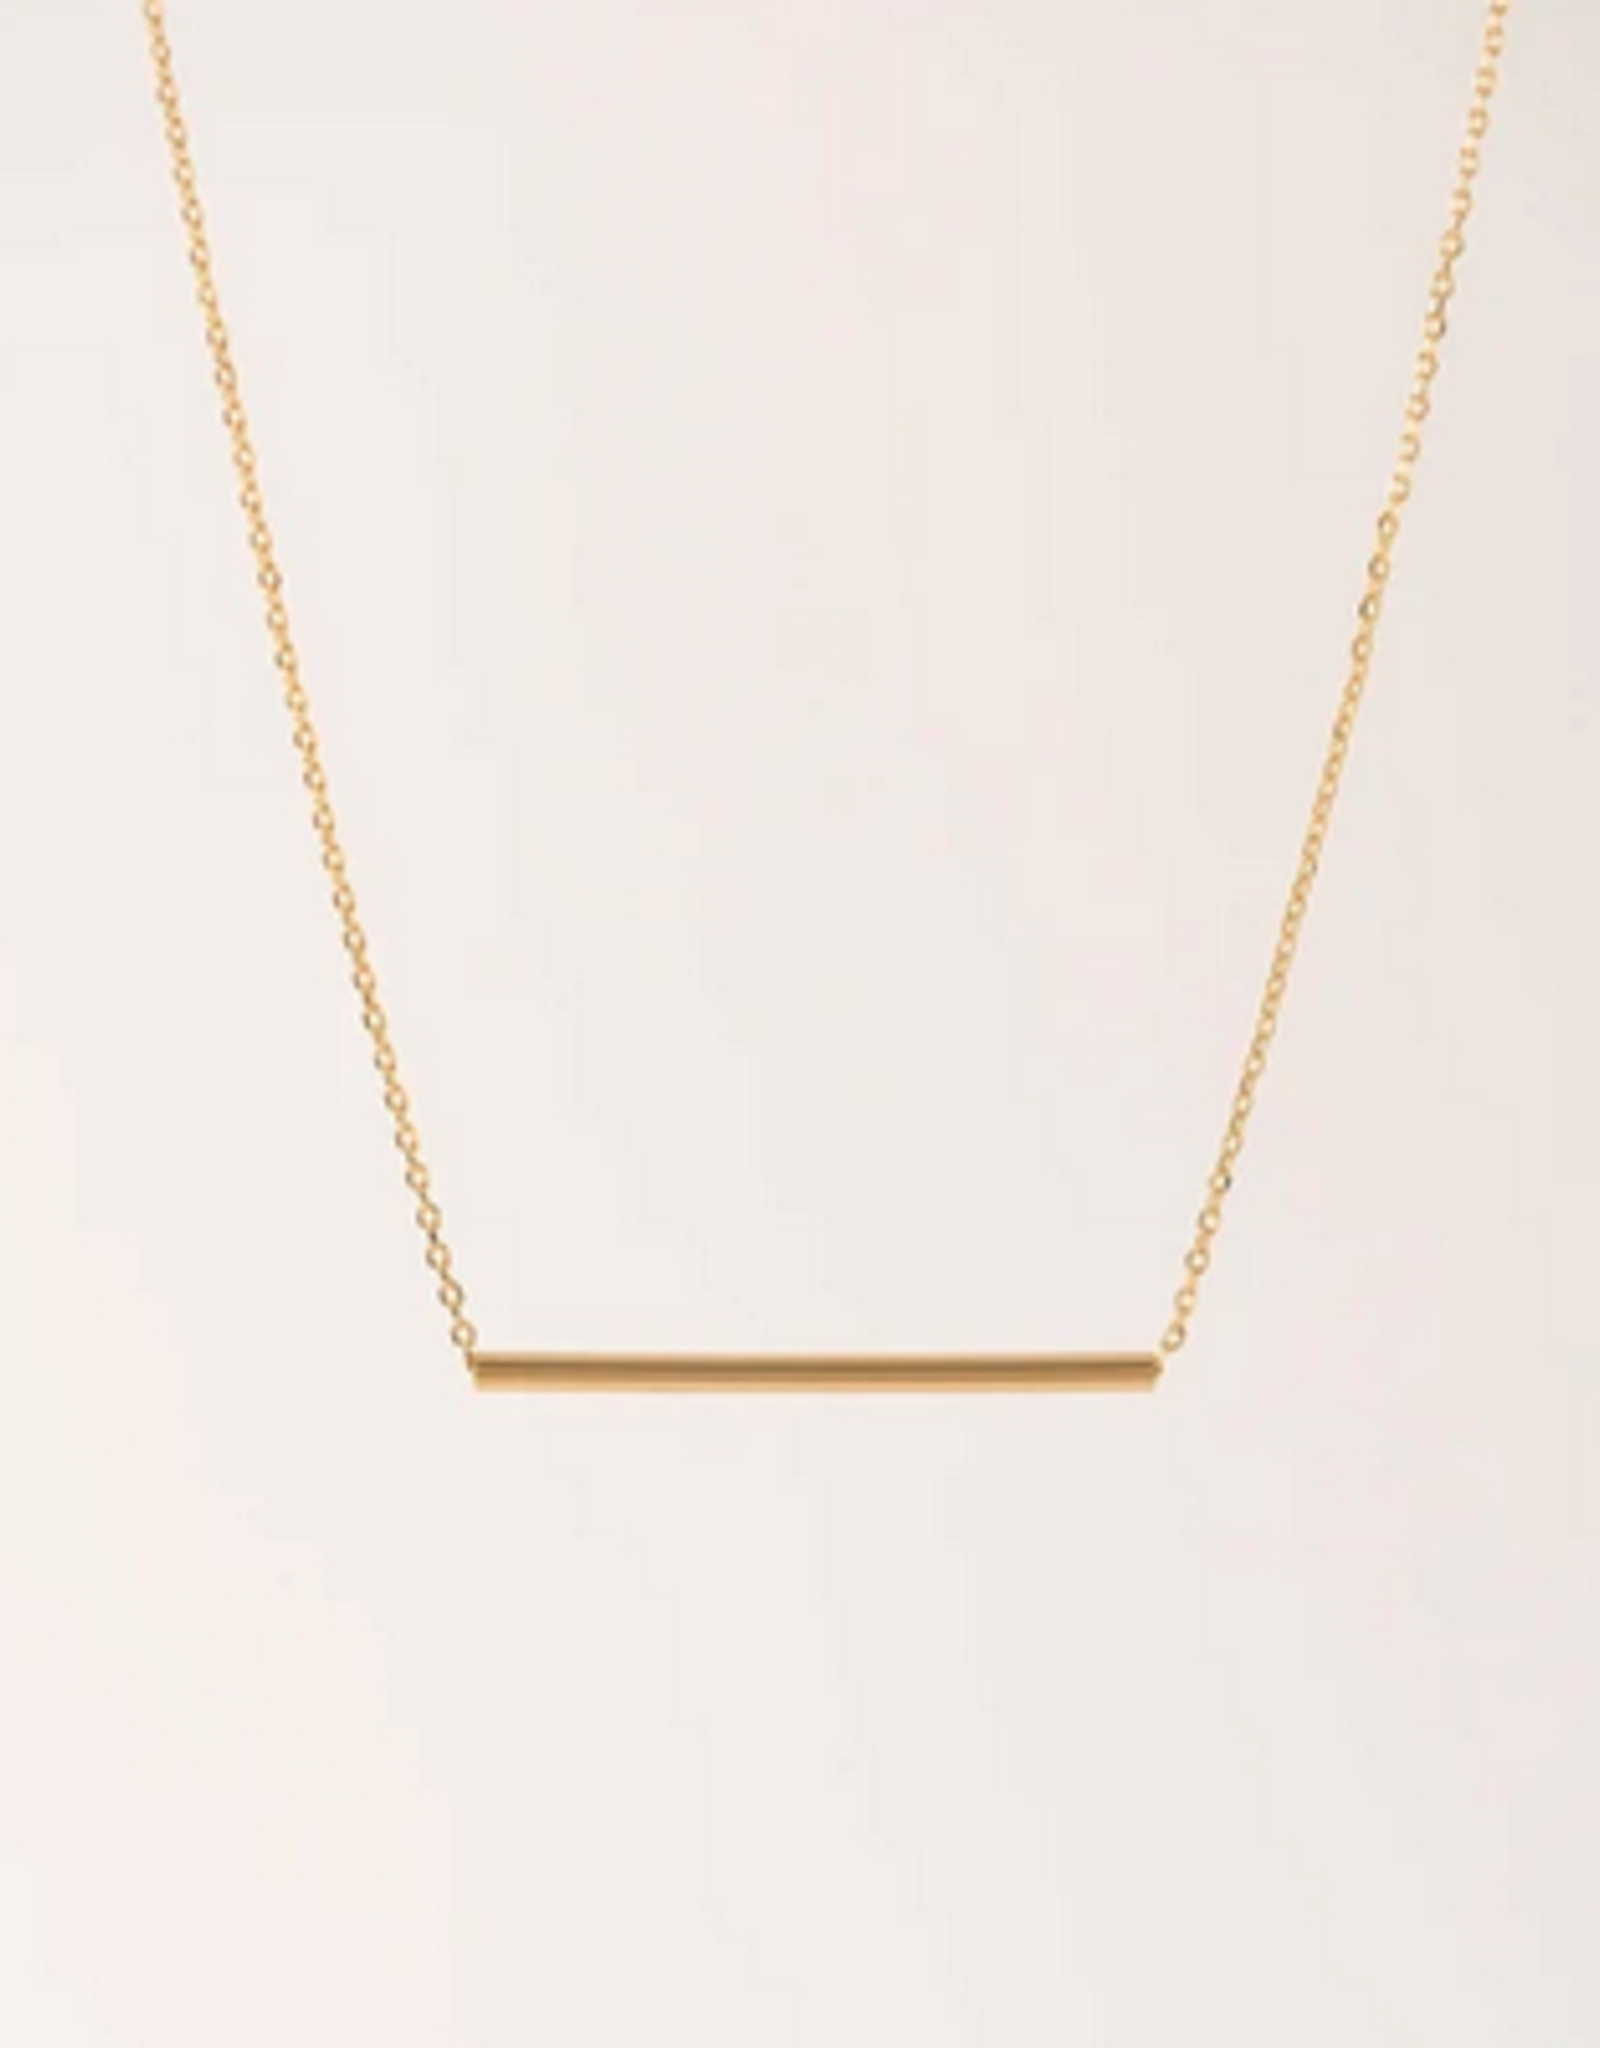 Serra Pipe Necklace - Gold